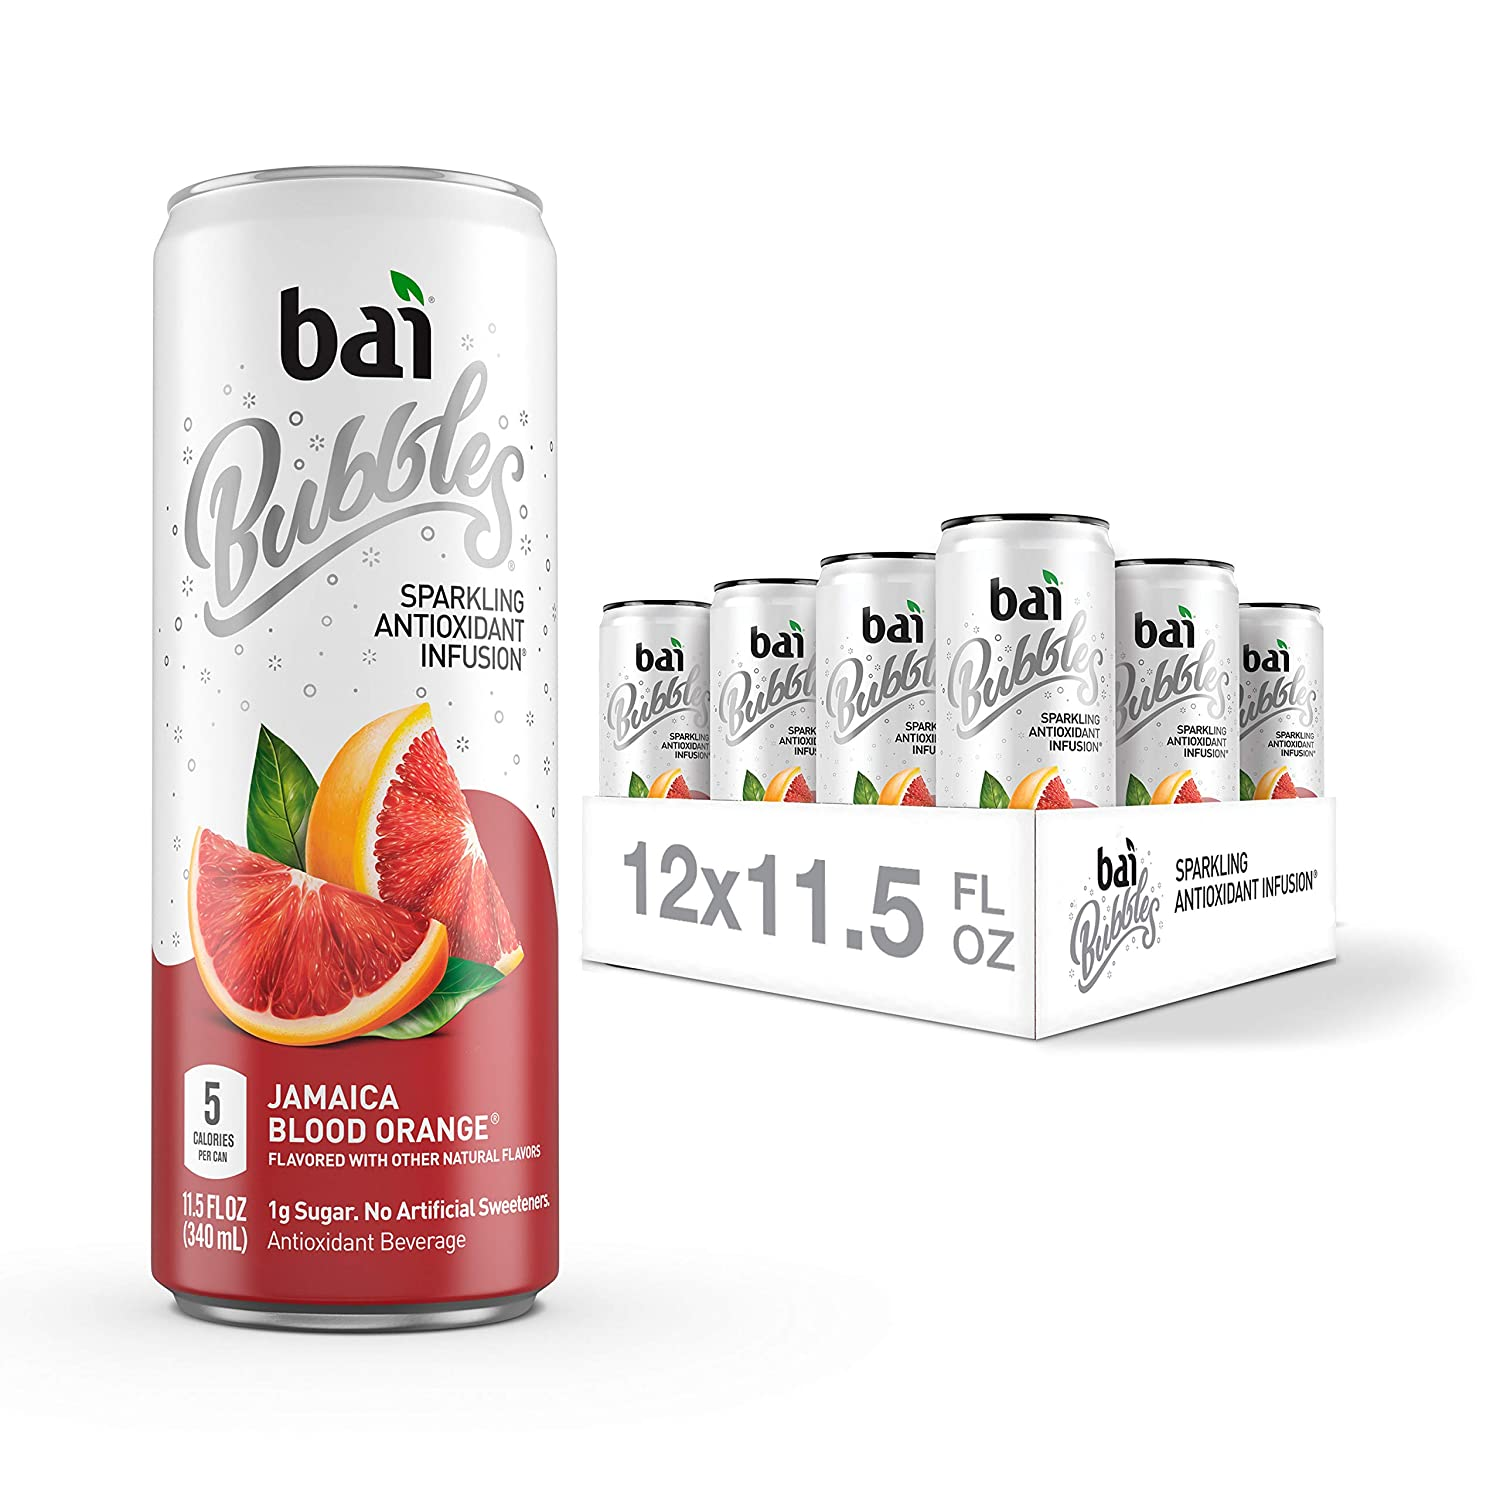 Bai Bubbles, Sparkling Water, Jamaica Blood Orange, Antioxidant Infused Drinks, 11.5 Fluid Ounce Cans, Pack of 12